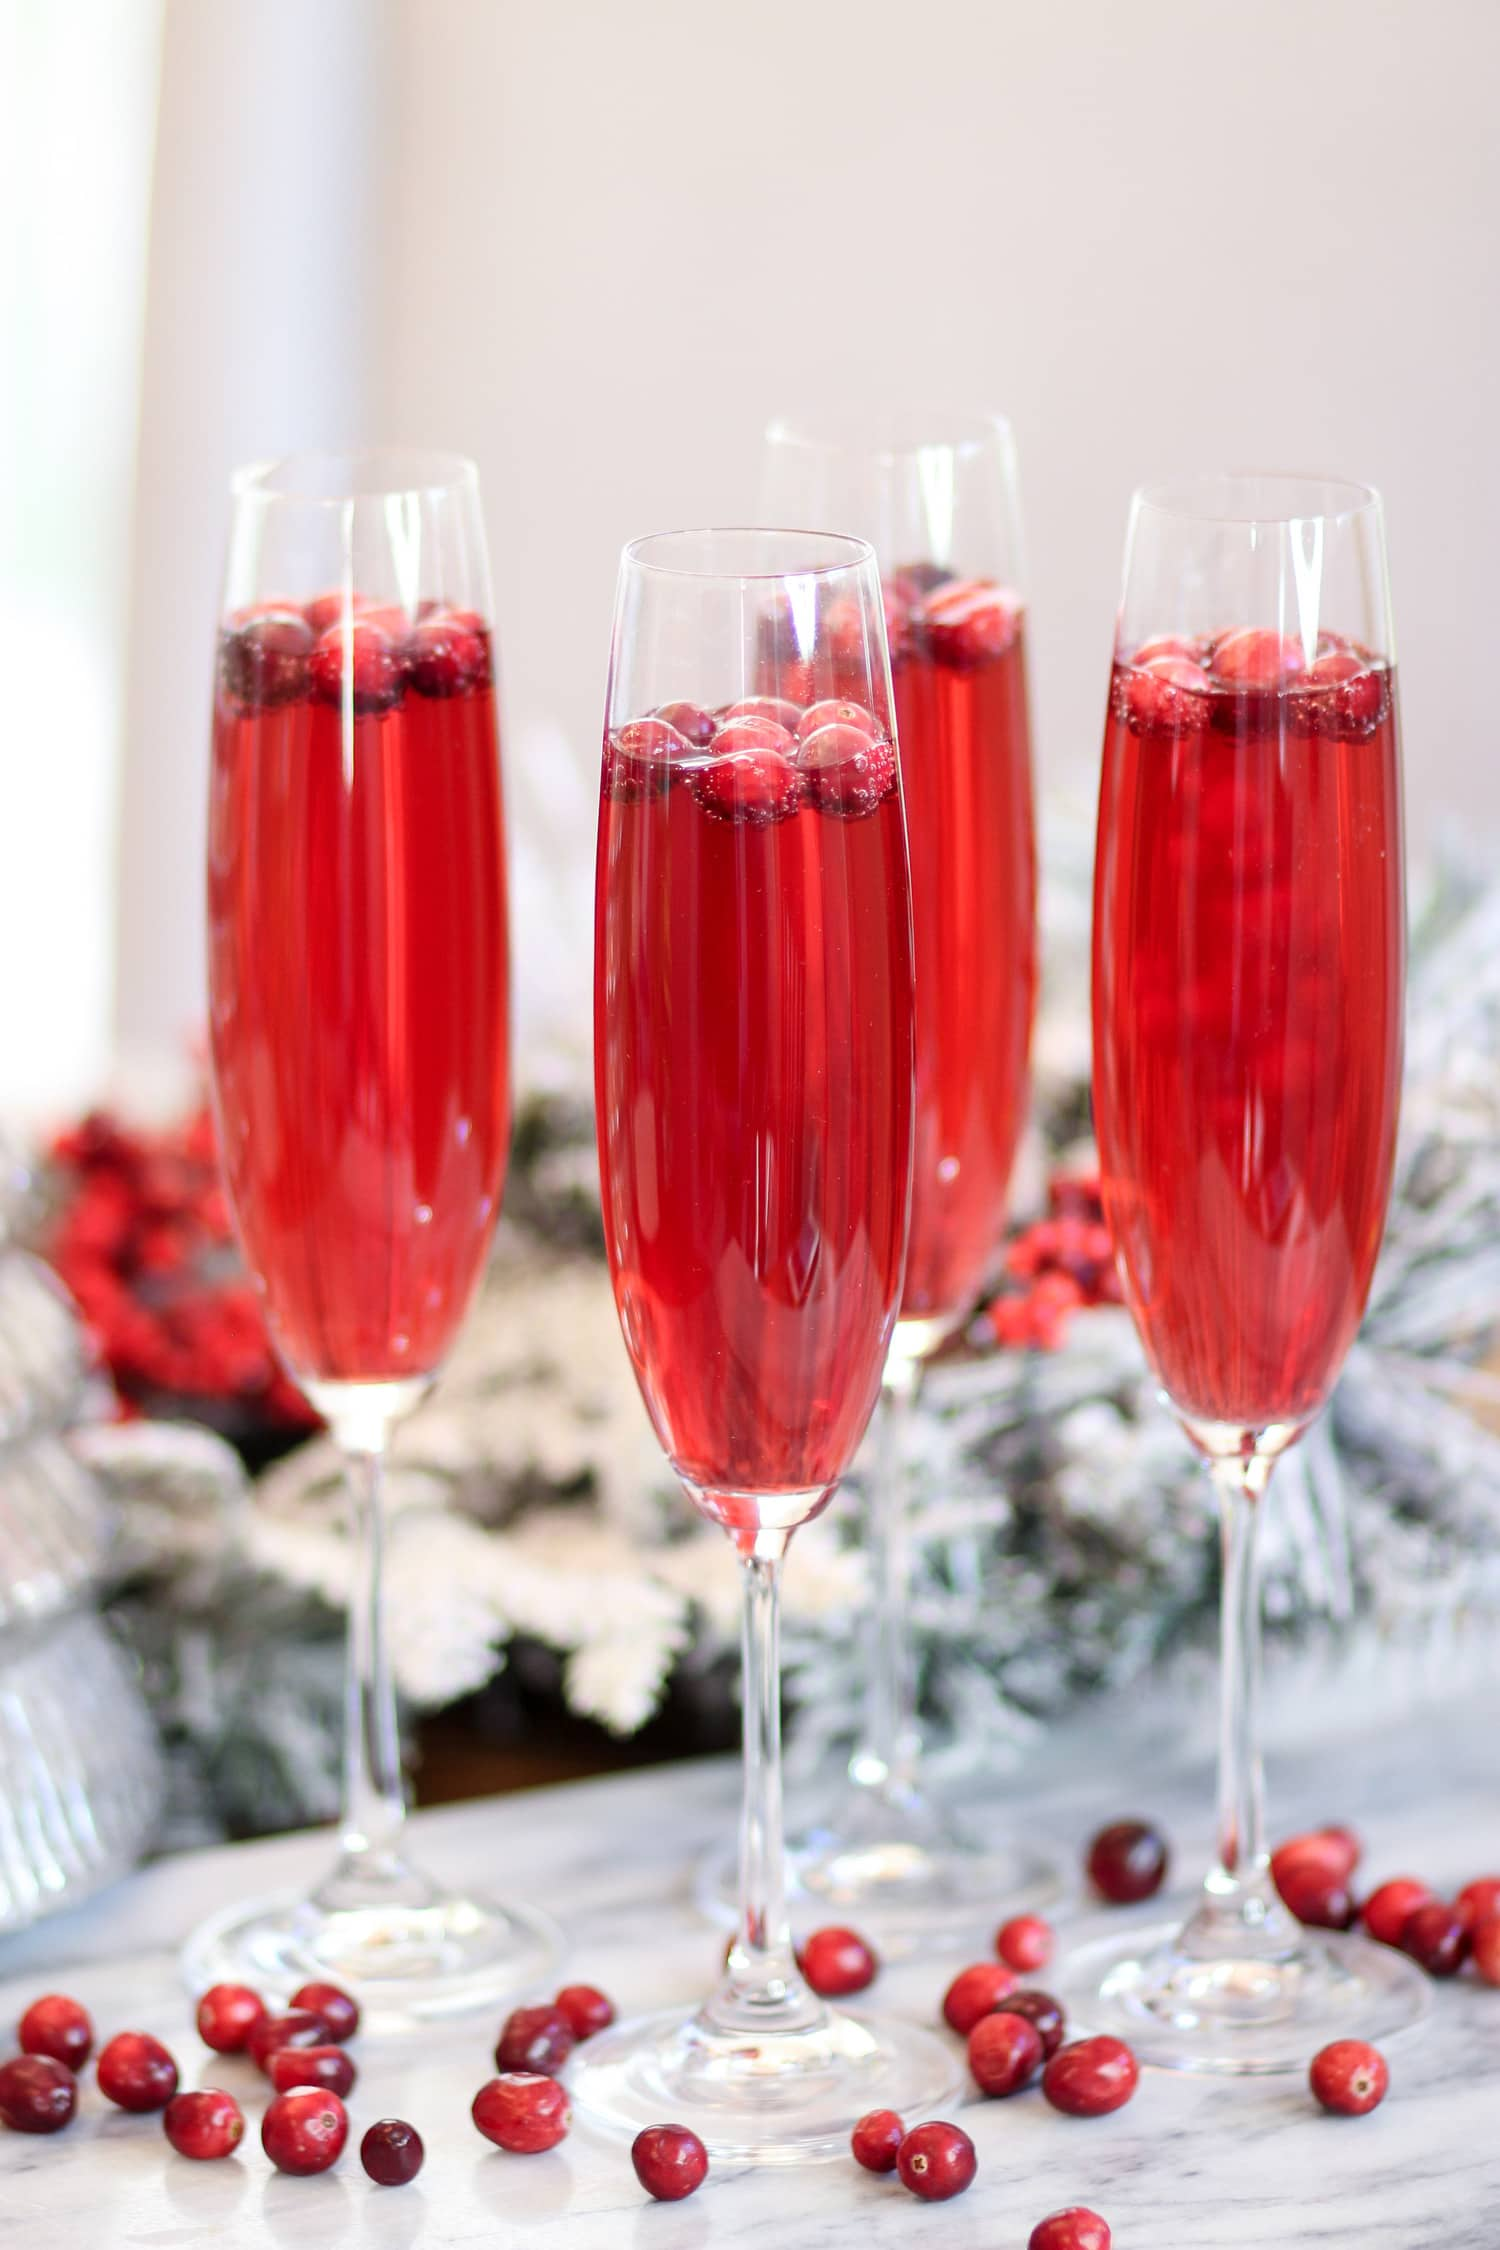 holiday party on a budget schweppes ginger ale mocktail cranberry drink Ashley Brooke Nicholas